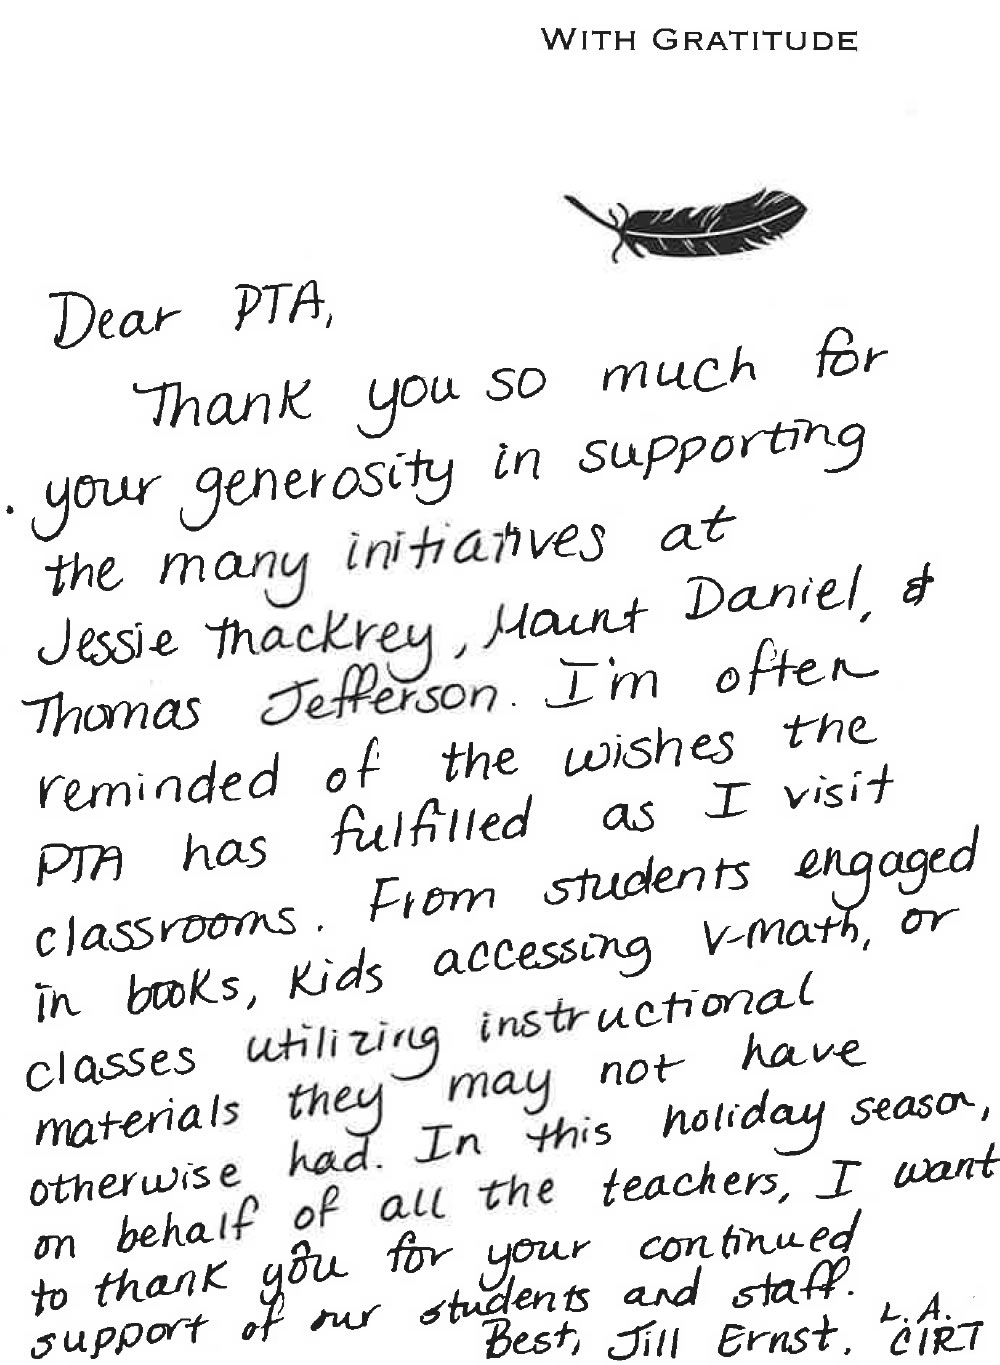 Sample Appreciation Letter For Teachers From Principal